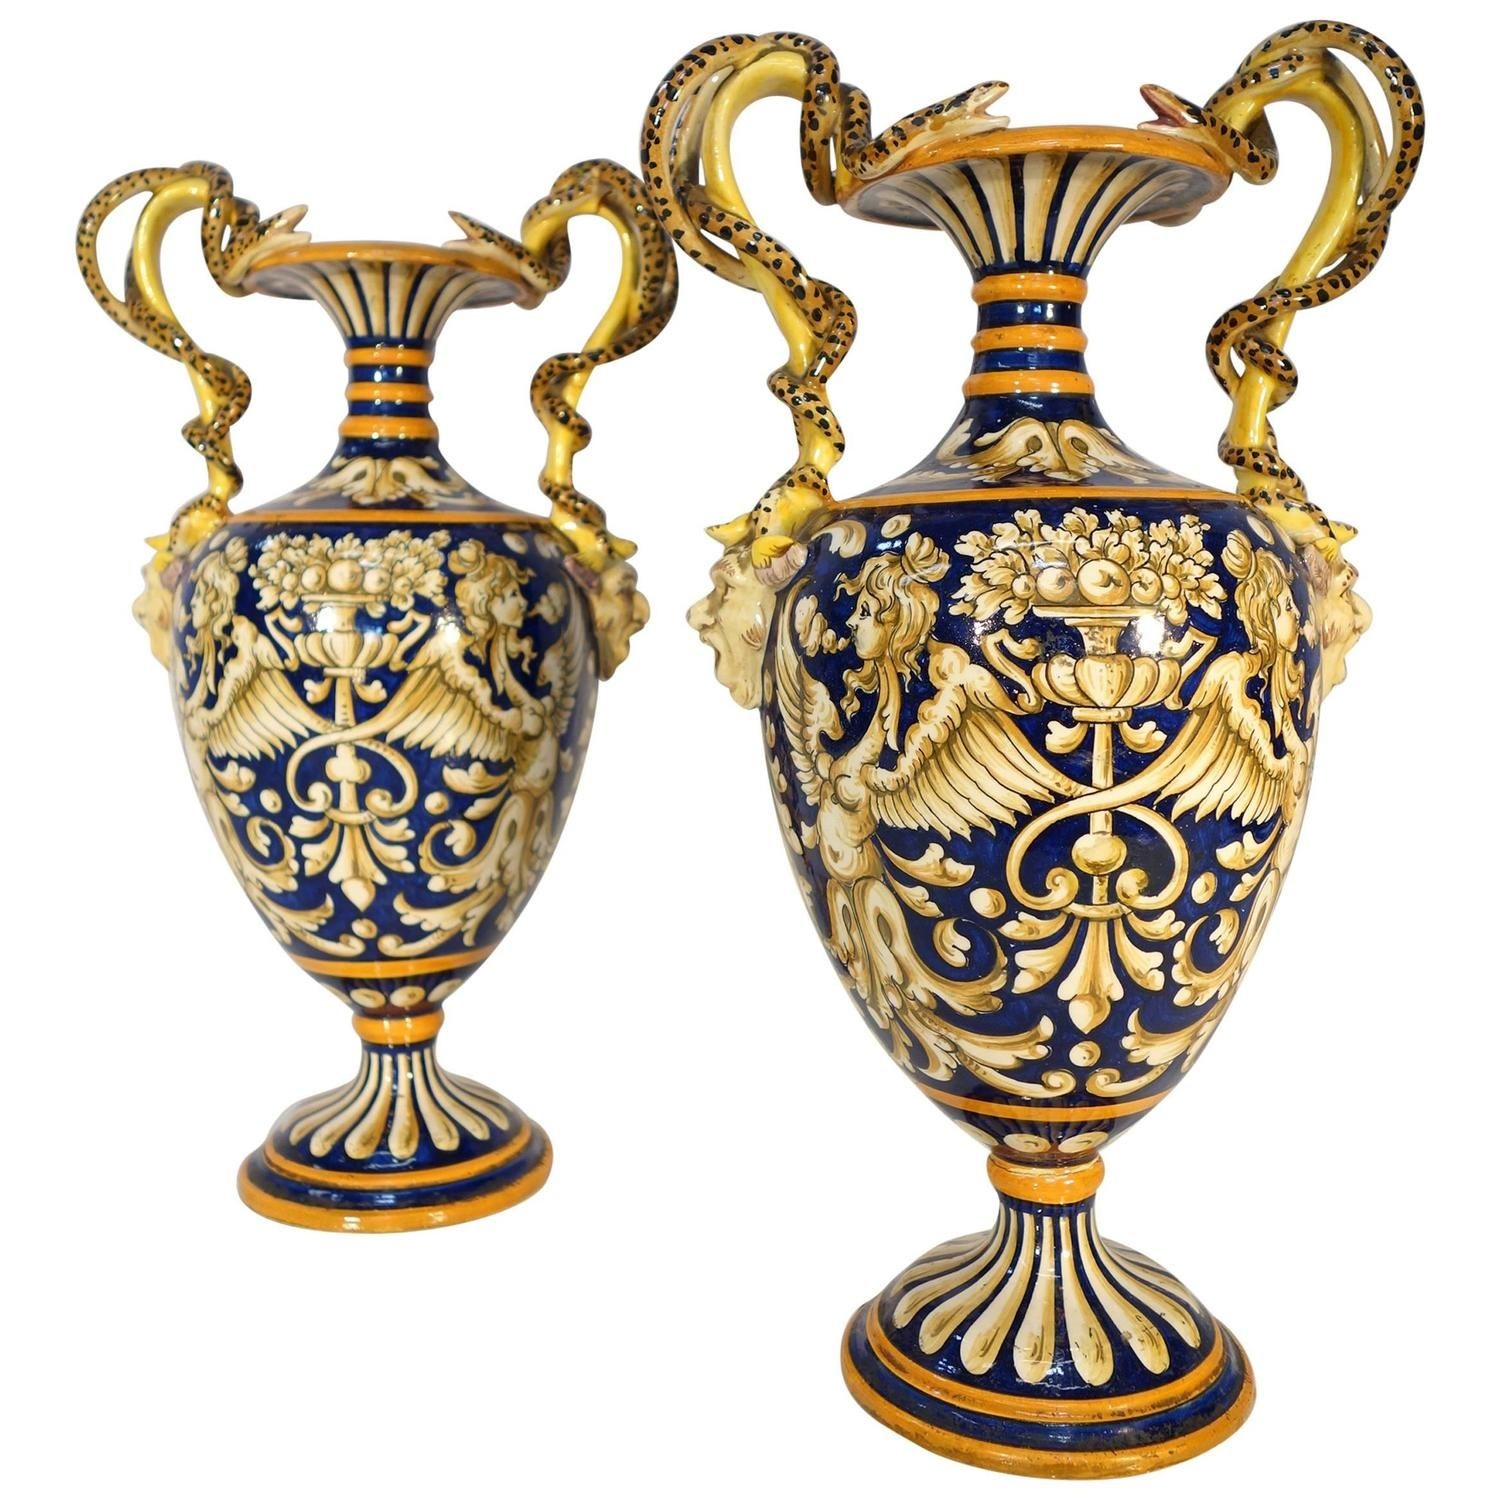 Pair of antique 19th century majolica italian amphorae 120000 pair of antique century majolica italian vases reviewsmspy